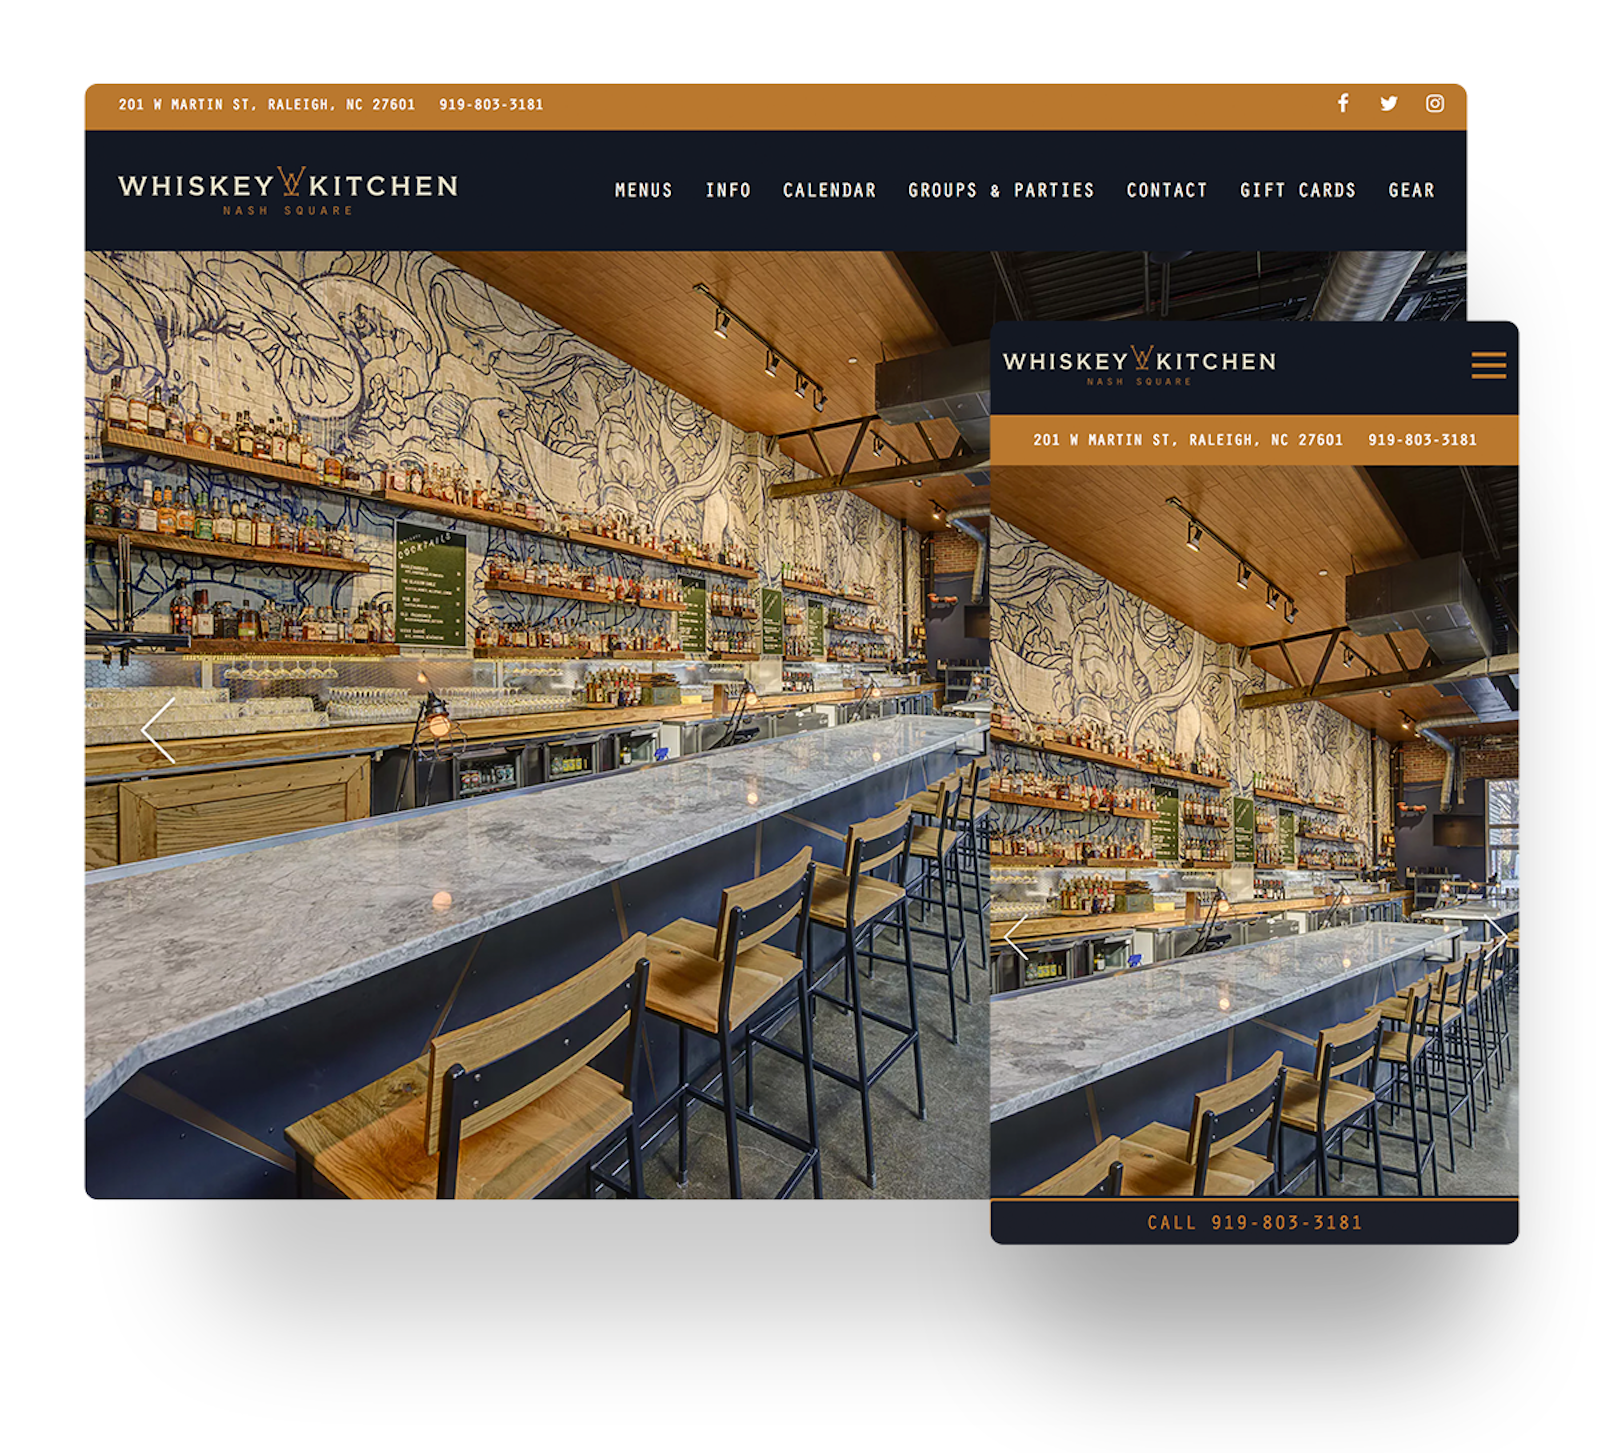 Whiskey Kitchen's website in mobile and desktop views